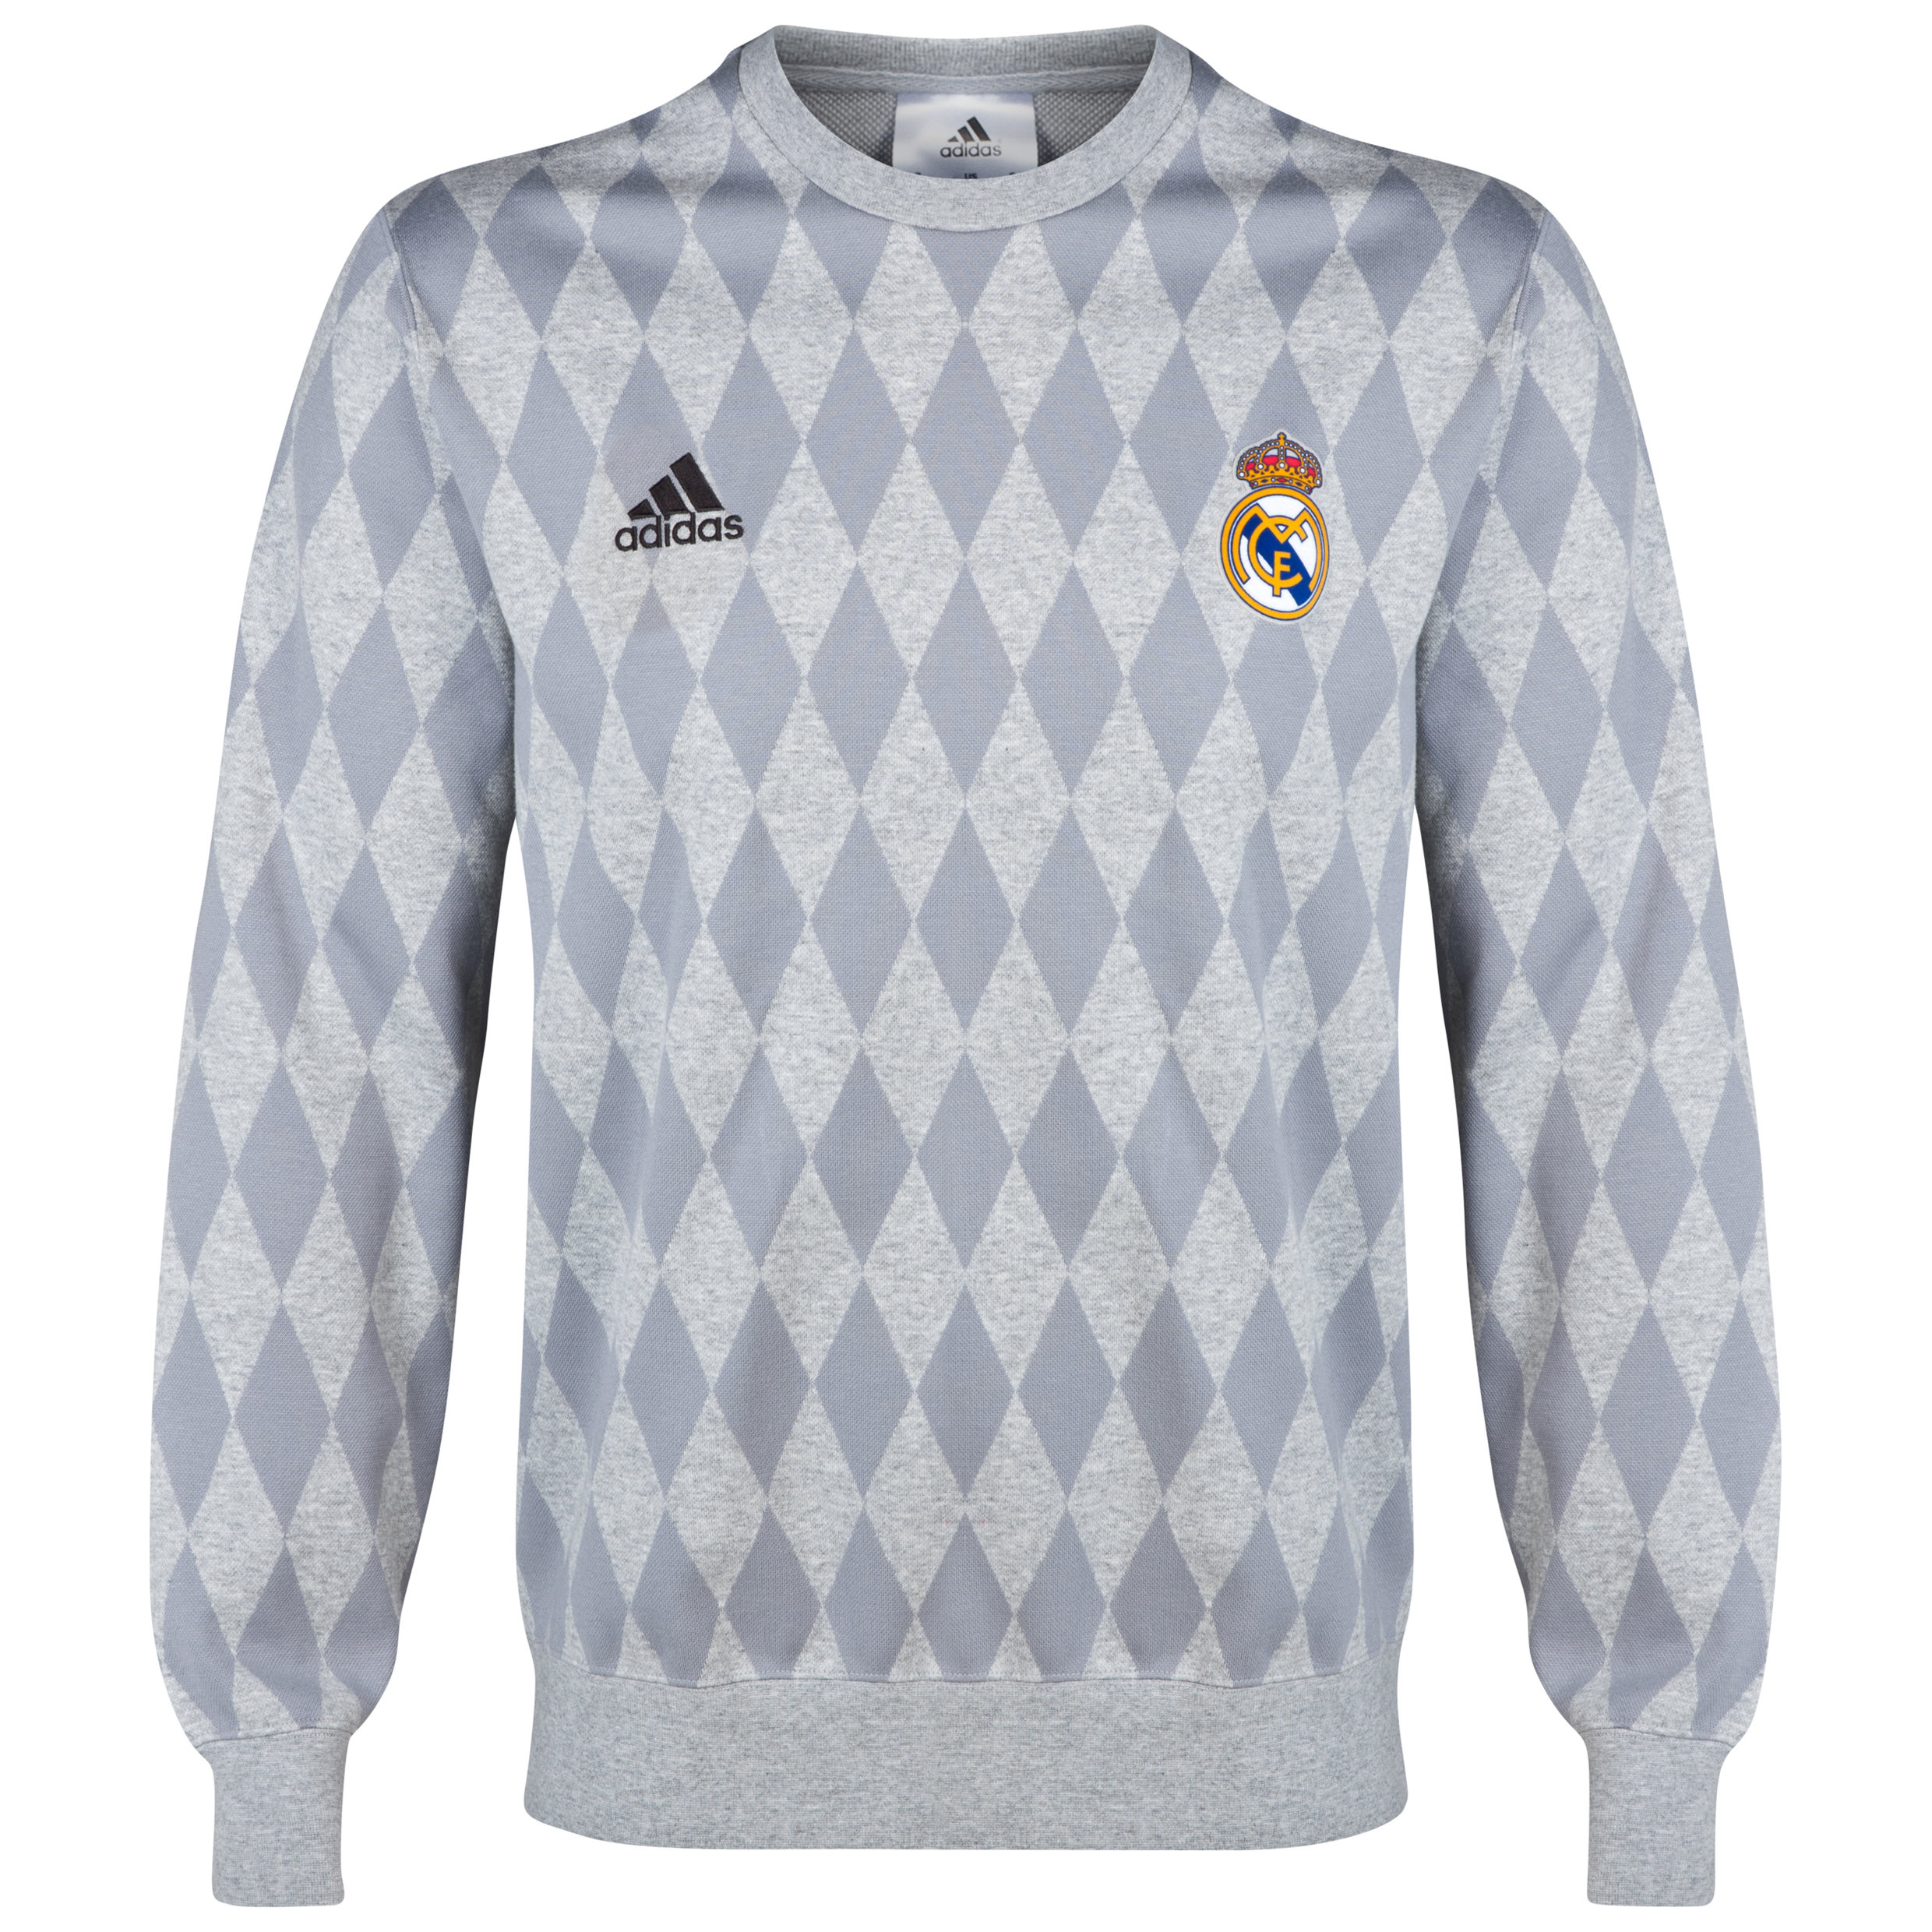 Real Madrid Sweatshirt Grey